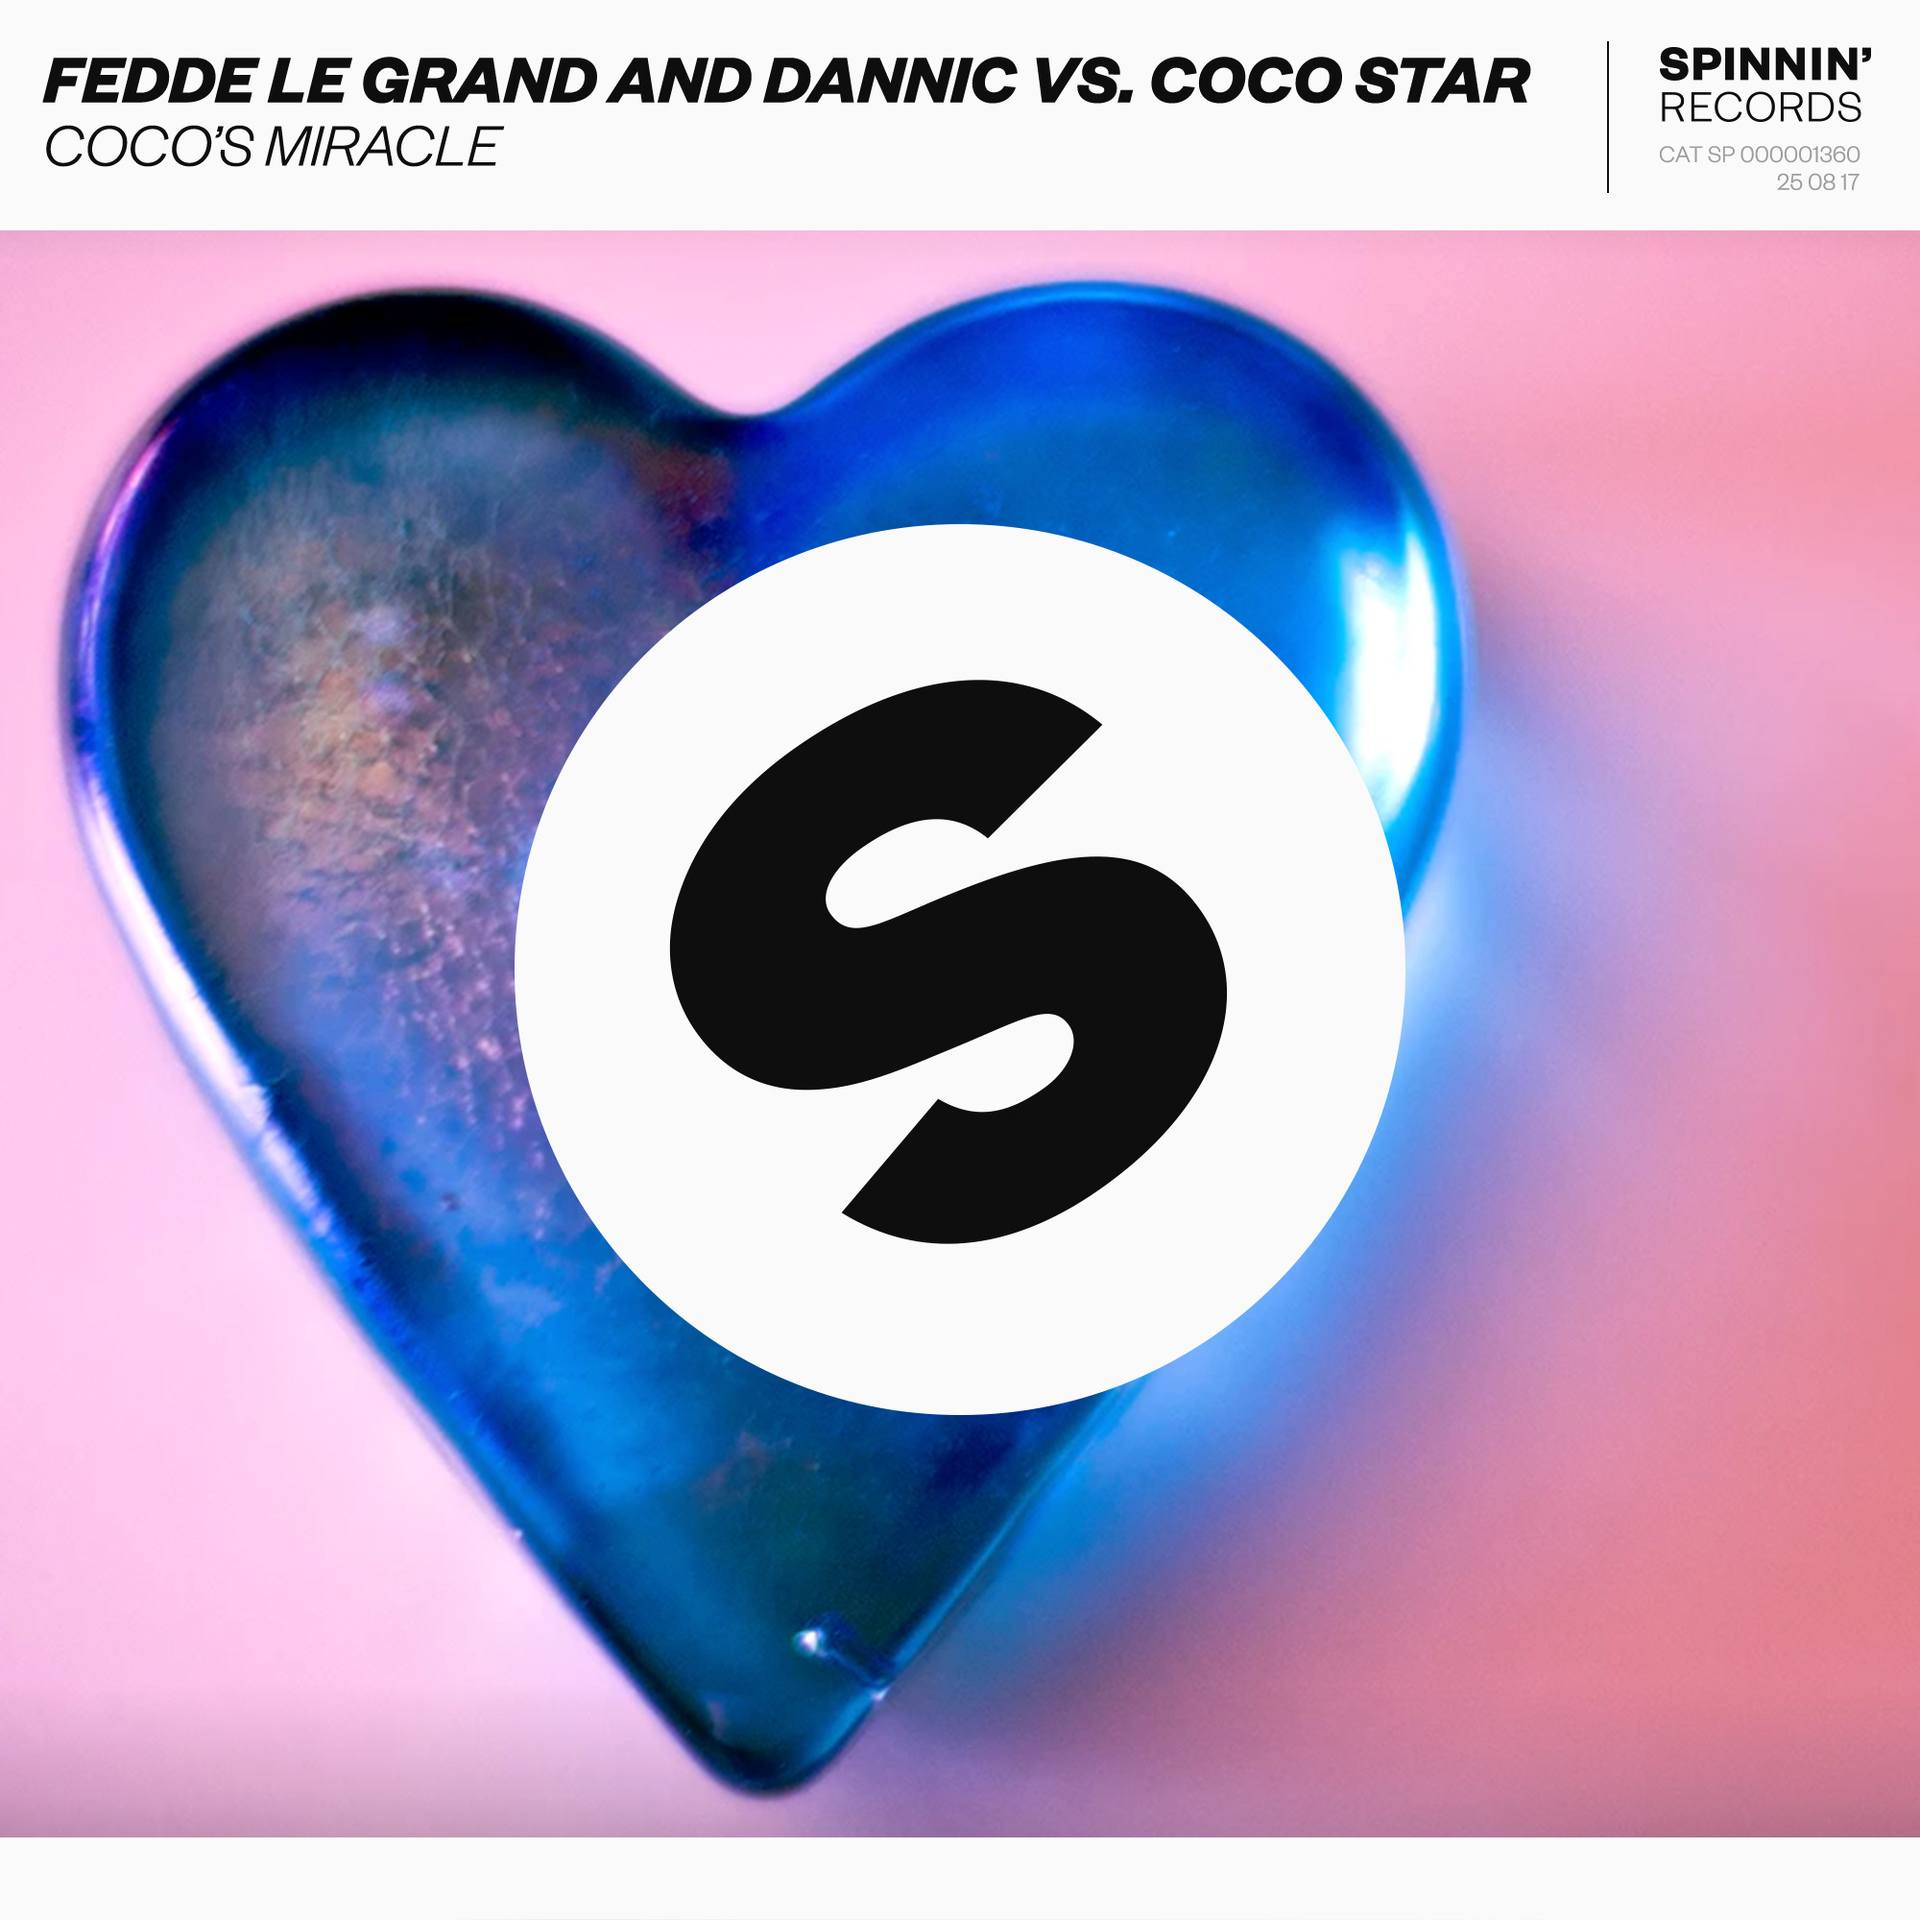 FEDDE LE GRAND AND DANNIC VS. COCO STAR – COCO'S MIRACLE [OUT NOW ON SPINNIN' RECORDS]